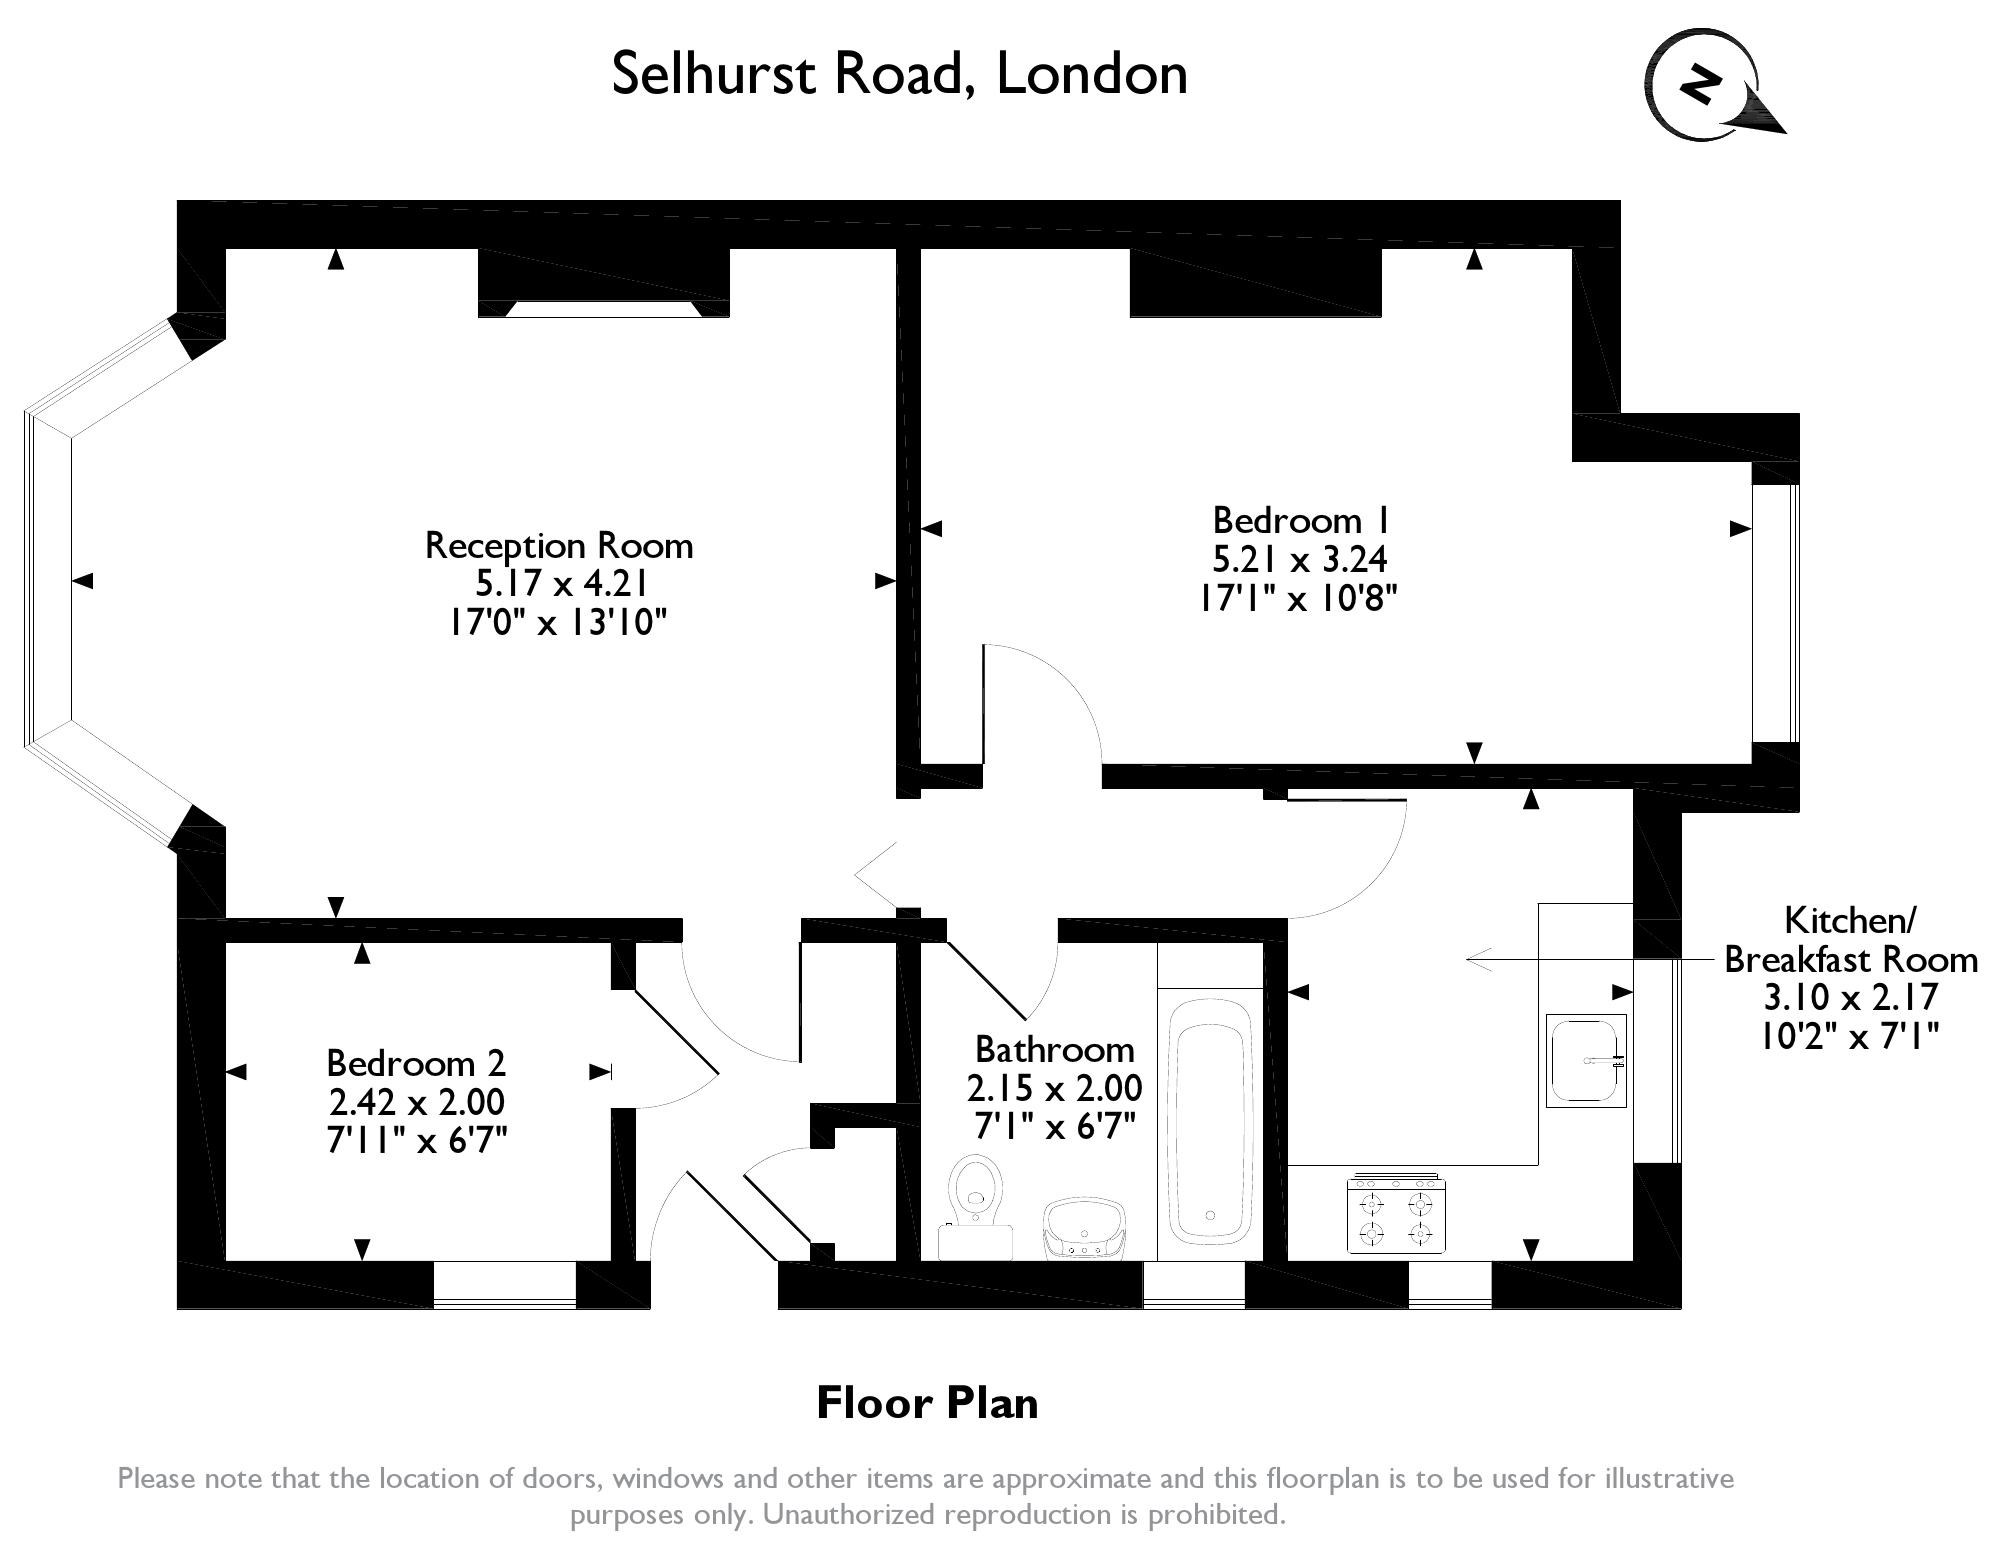 Selhurst Road, London, SE25 floor plan